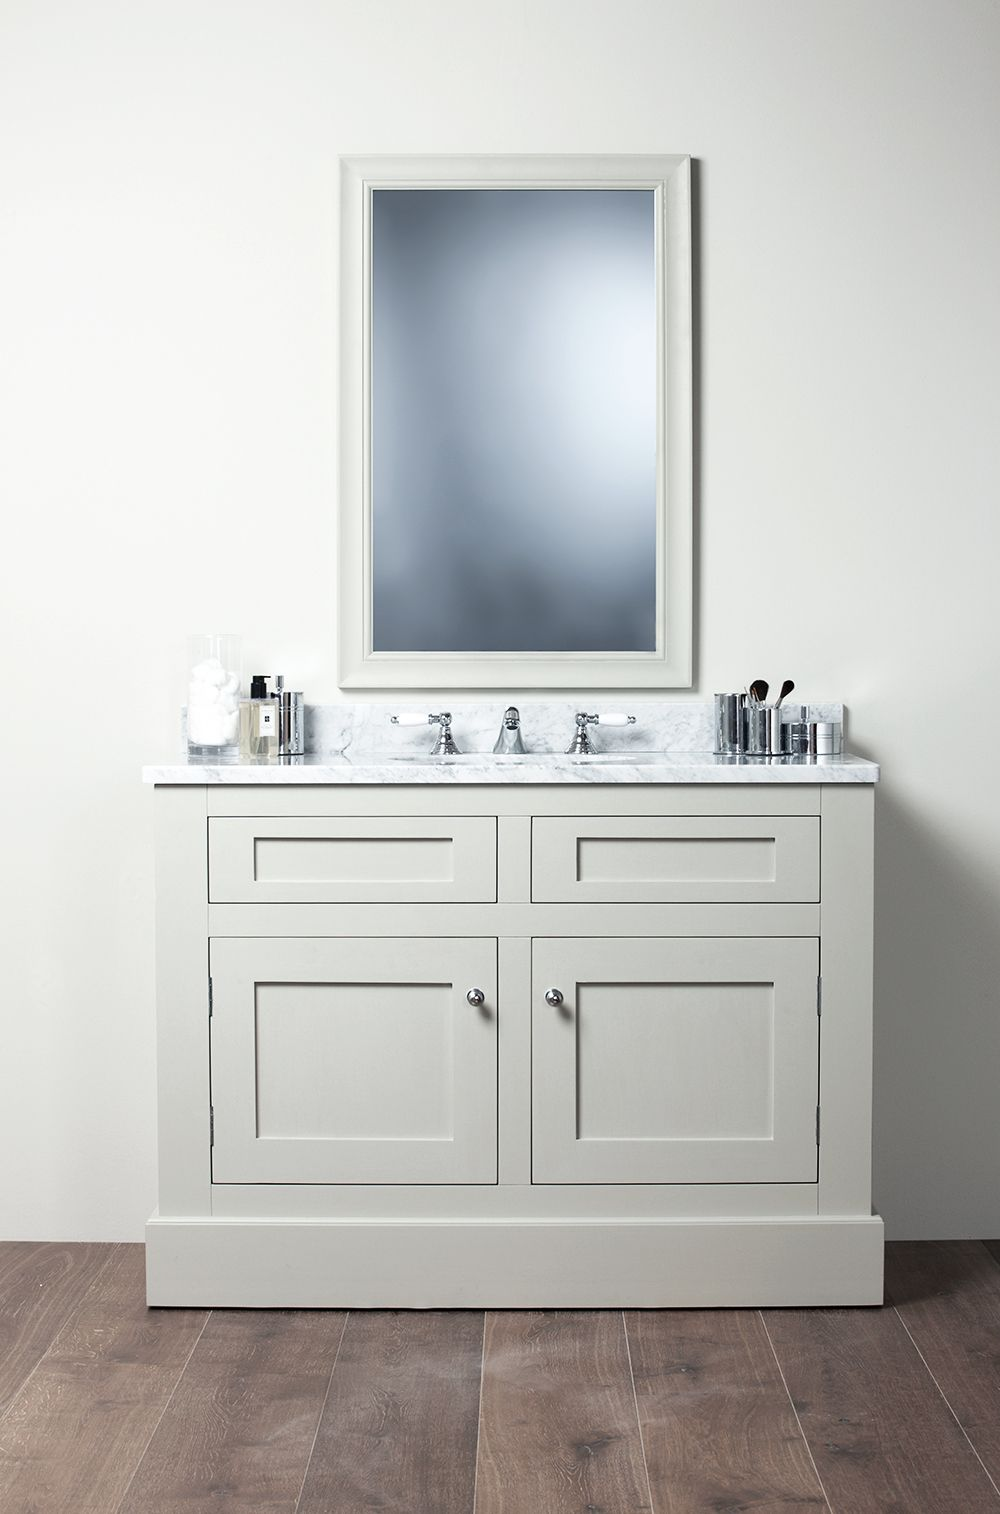 Bathroom Storage Cabinet Ebay shaker style bathroom vanity unit: shaker bathroom vanity unit under